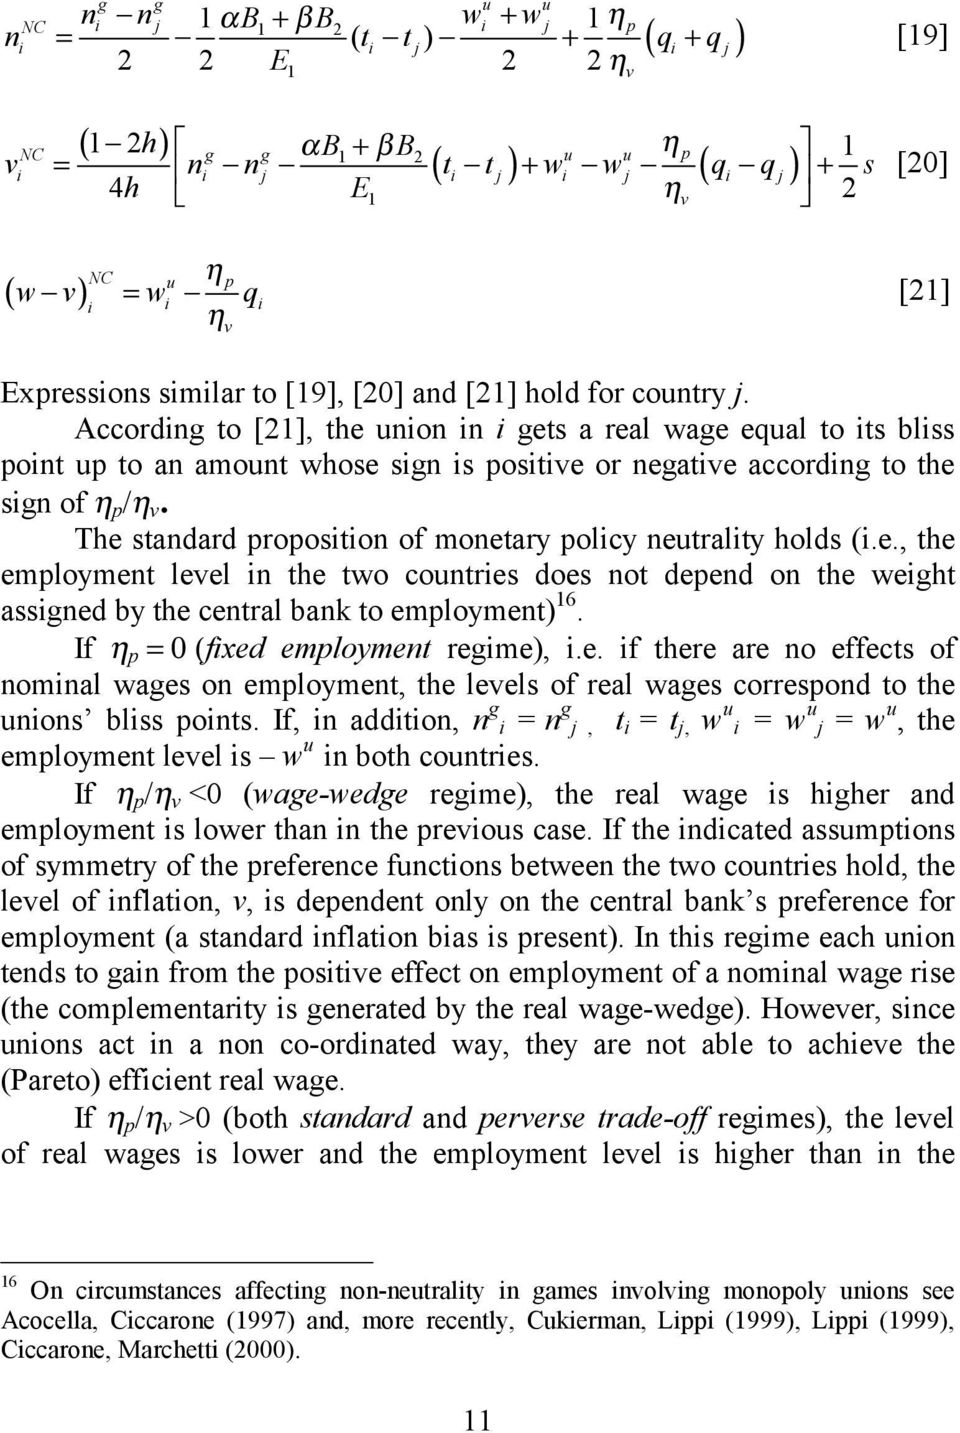 According to [21], the union in i gets a real wage equal to its bliss point up to an amount whose sign is positive or negative according to the sign of η p /η v.